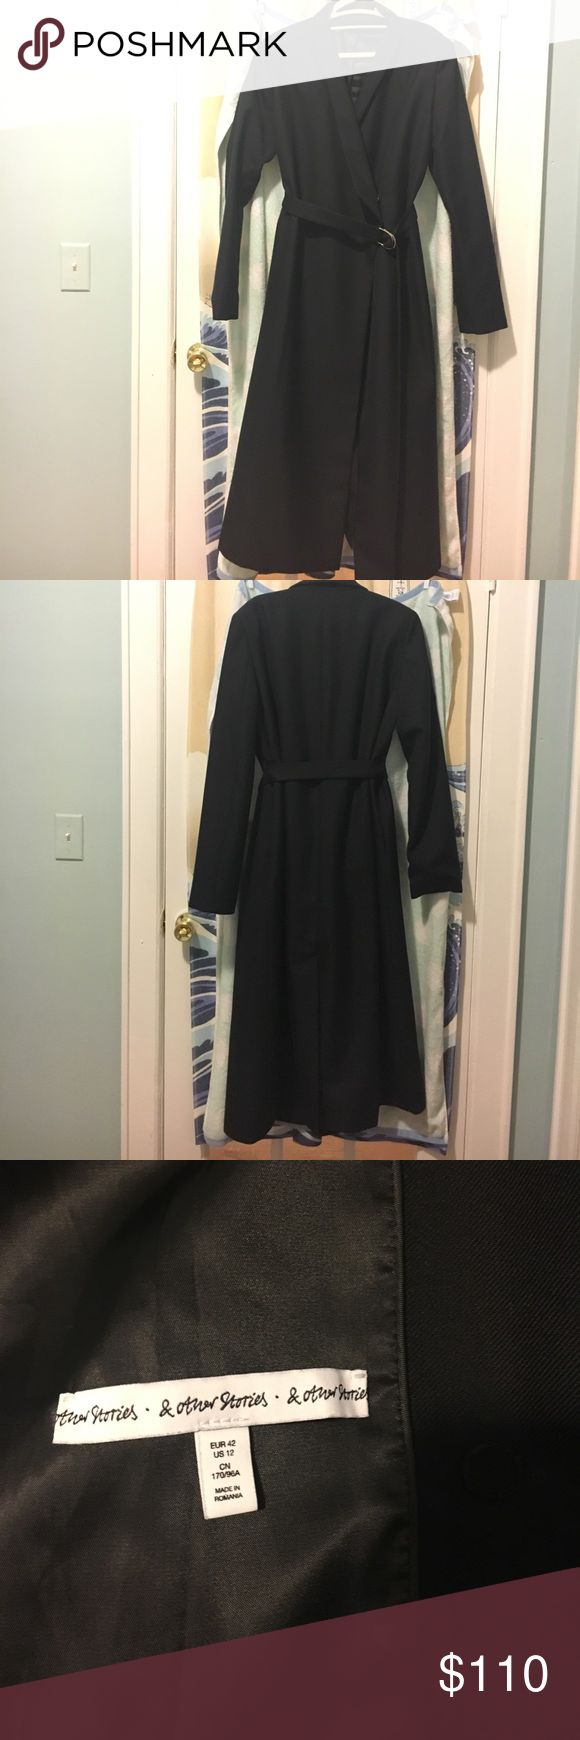 & other stories blended wool kimono coat (black) Black Kimono Collar Belted Coat from & other stories. Bought it last Christmas. Have only wore twice. Almost new condition. Not to thick, knee length. Perfect for spring weather. & other Stories Jackets & Coats Trench Coats